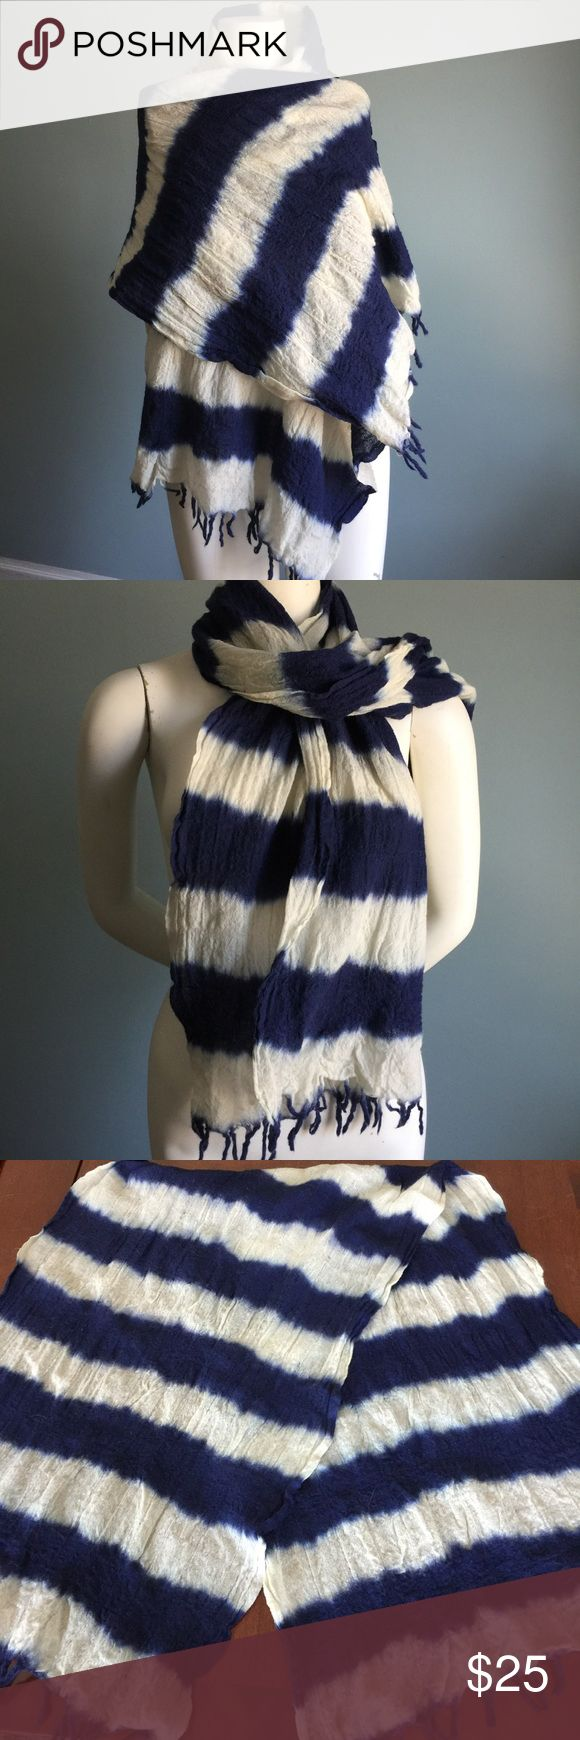 "J. Crew Blue and White Scarf In good condition and made of wool, this scarf measures 66"" in length and 21"" width. J. Crew Accessories Scarves & Wraps"